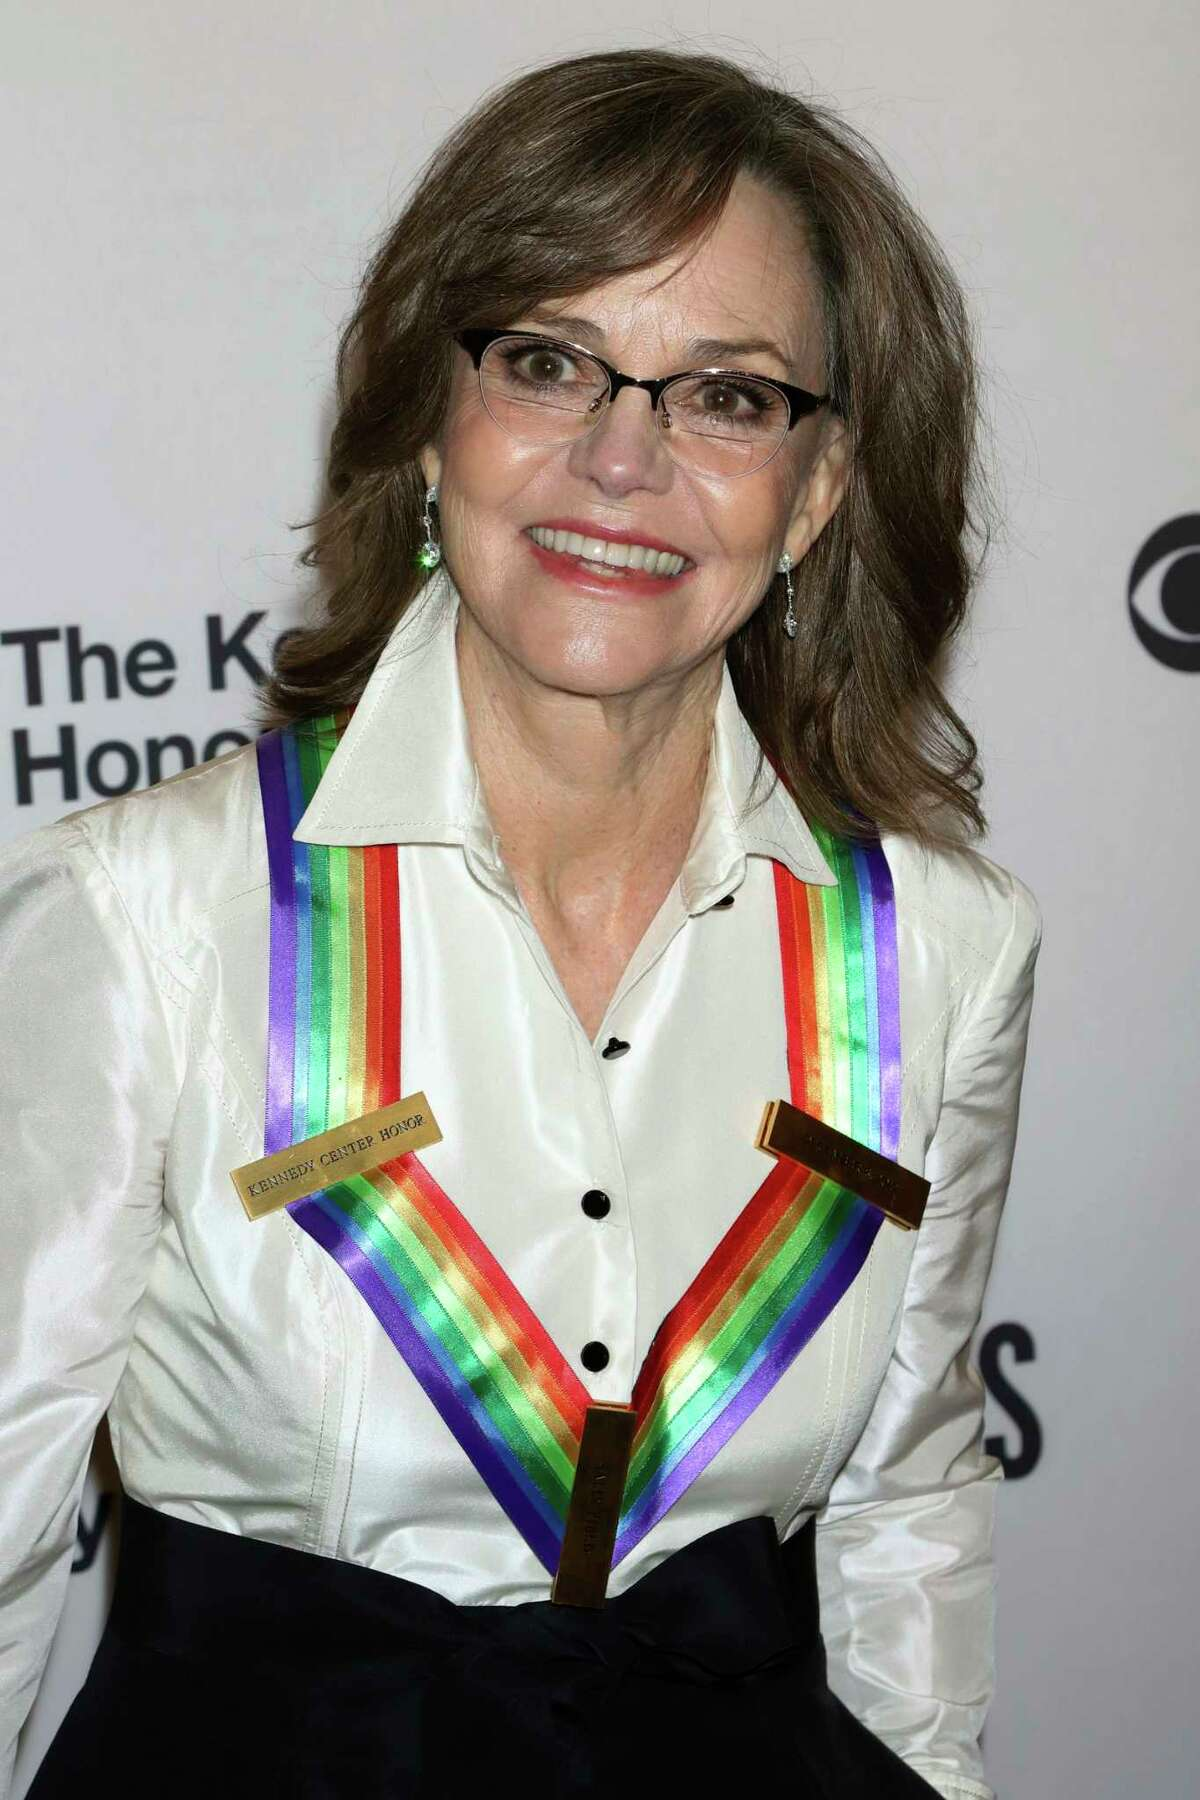 2019 Kennedy Center honoree Sally Field attends the 42nd Annual Kennedy Center Honors at The Kennedy Center, Sunday, Dec. 8, 2019, in Washington. (Photo by Greg Allen/Invision/AP)